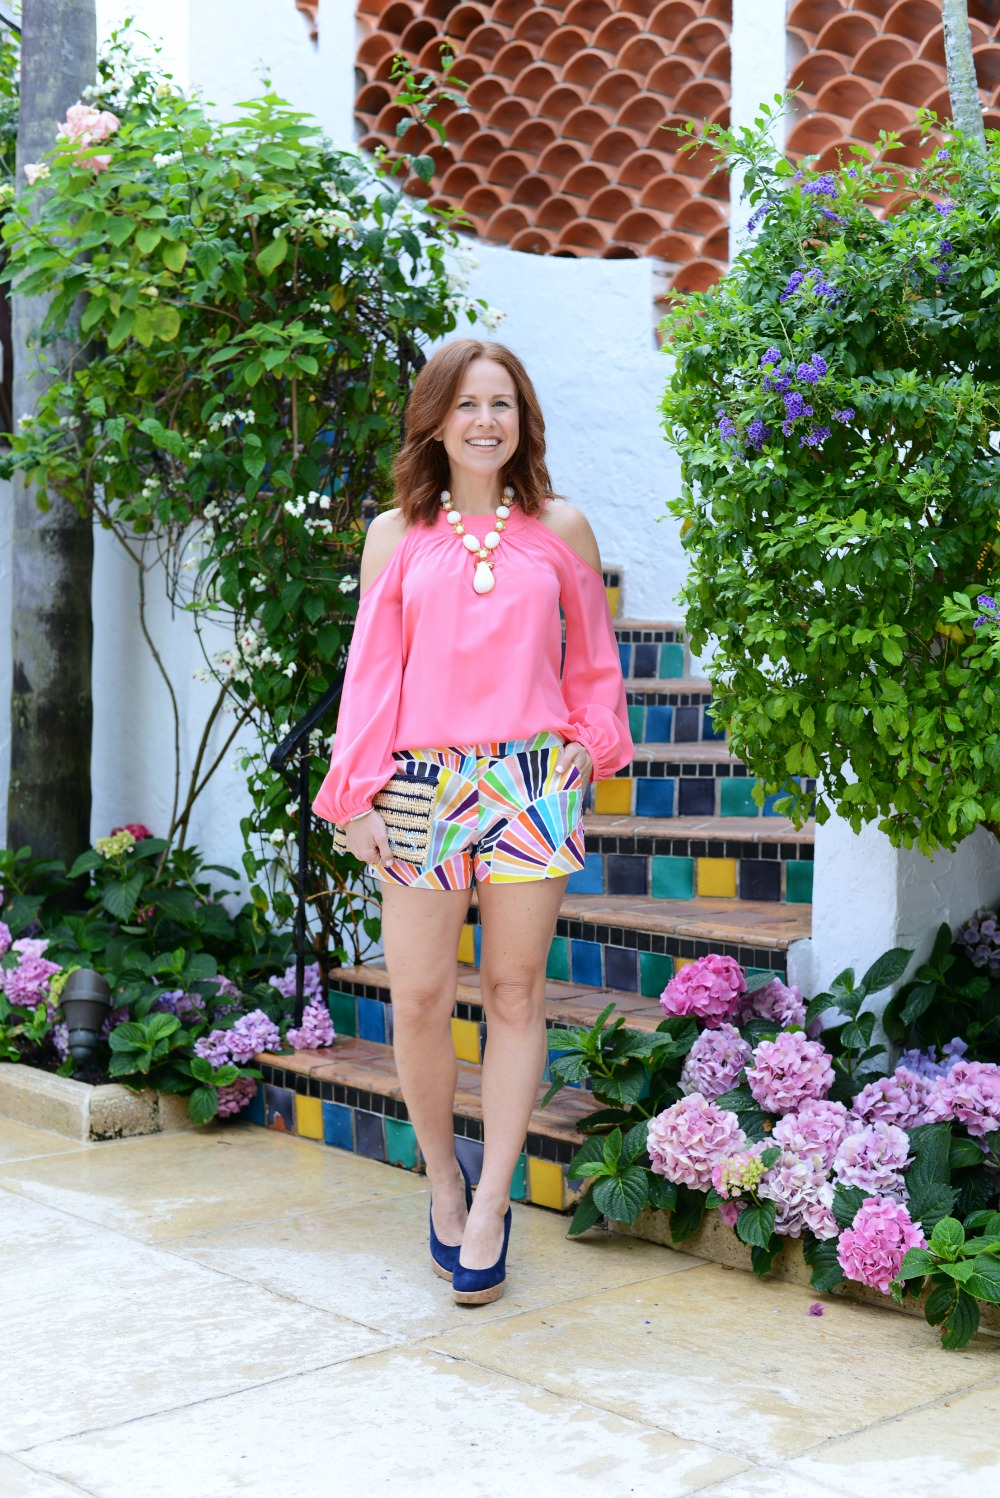 A fun way to wear shorts for date night, this time in Palm Beach // the modern savvy, a florida life + style blog